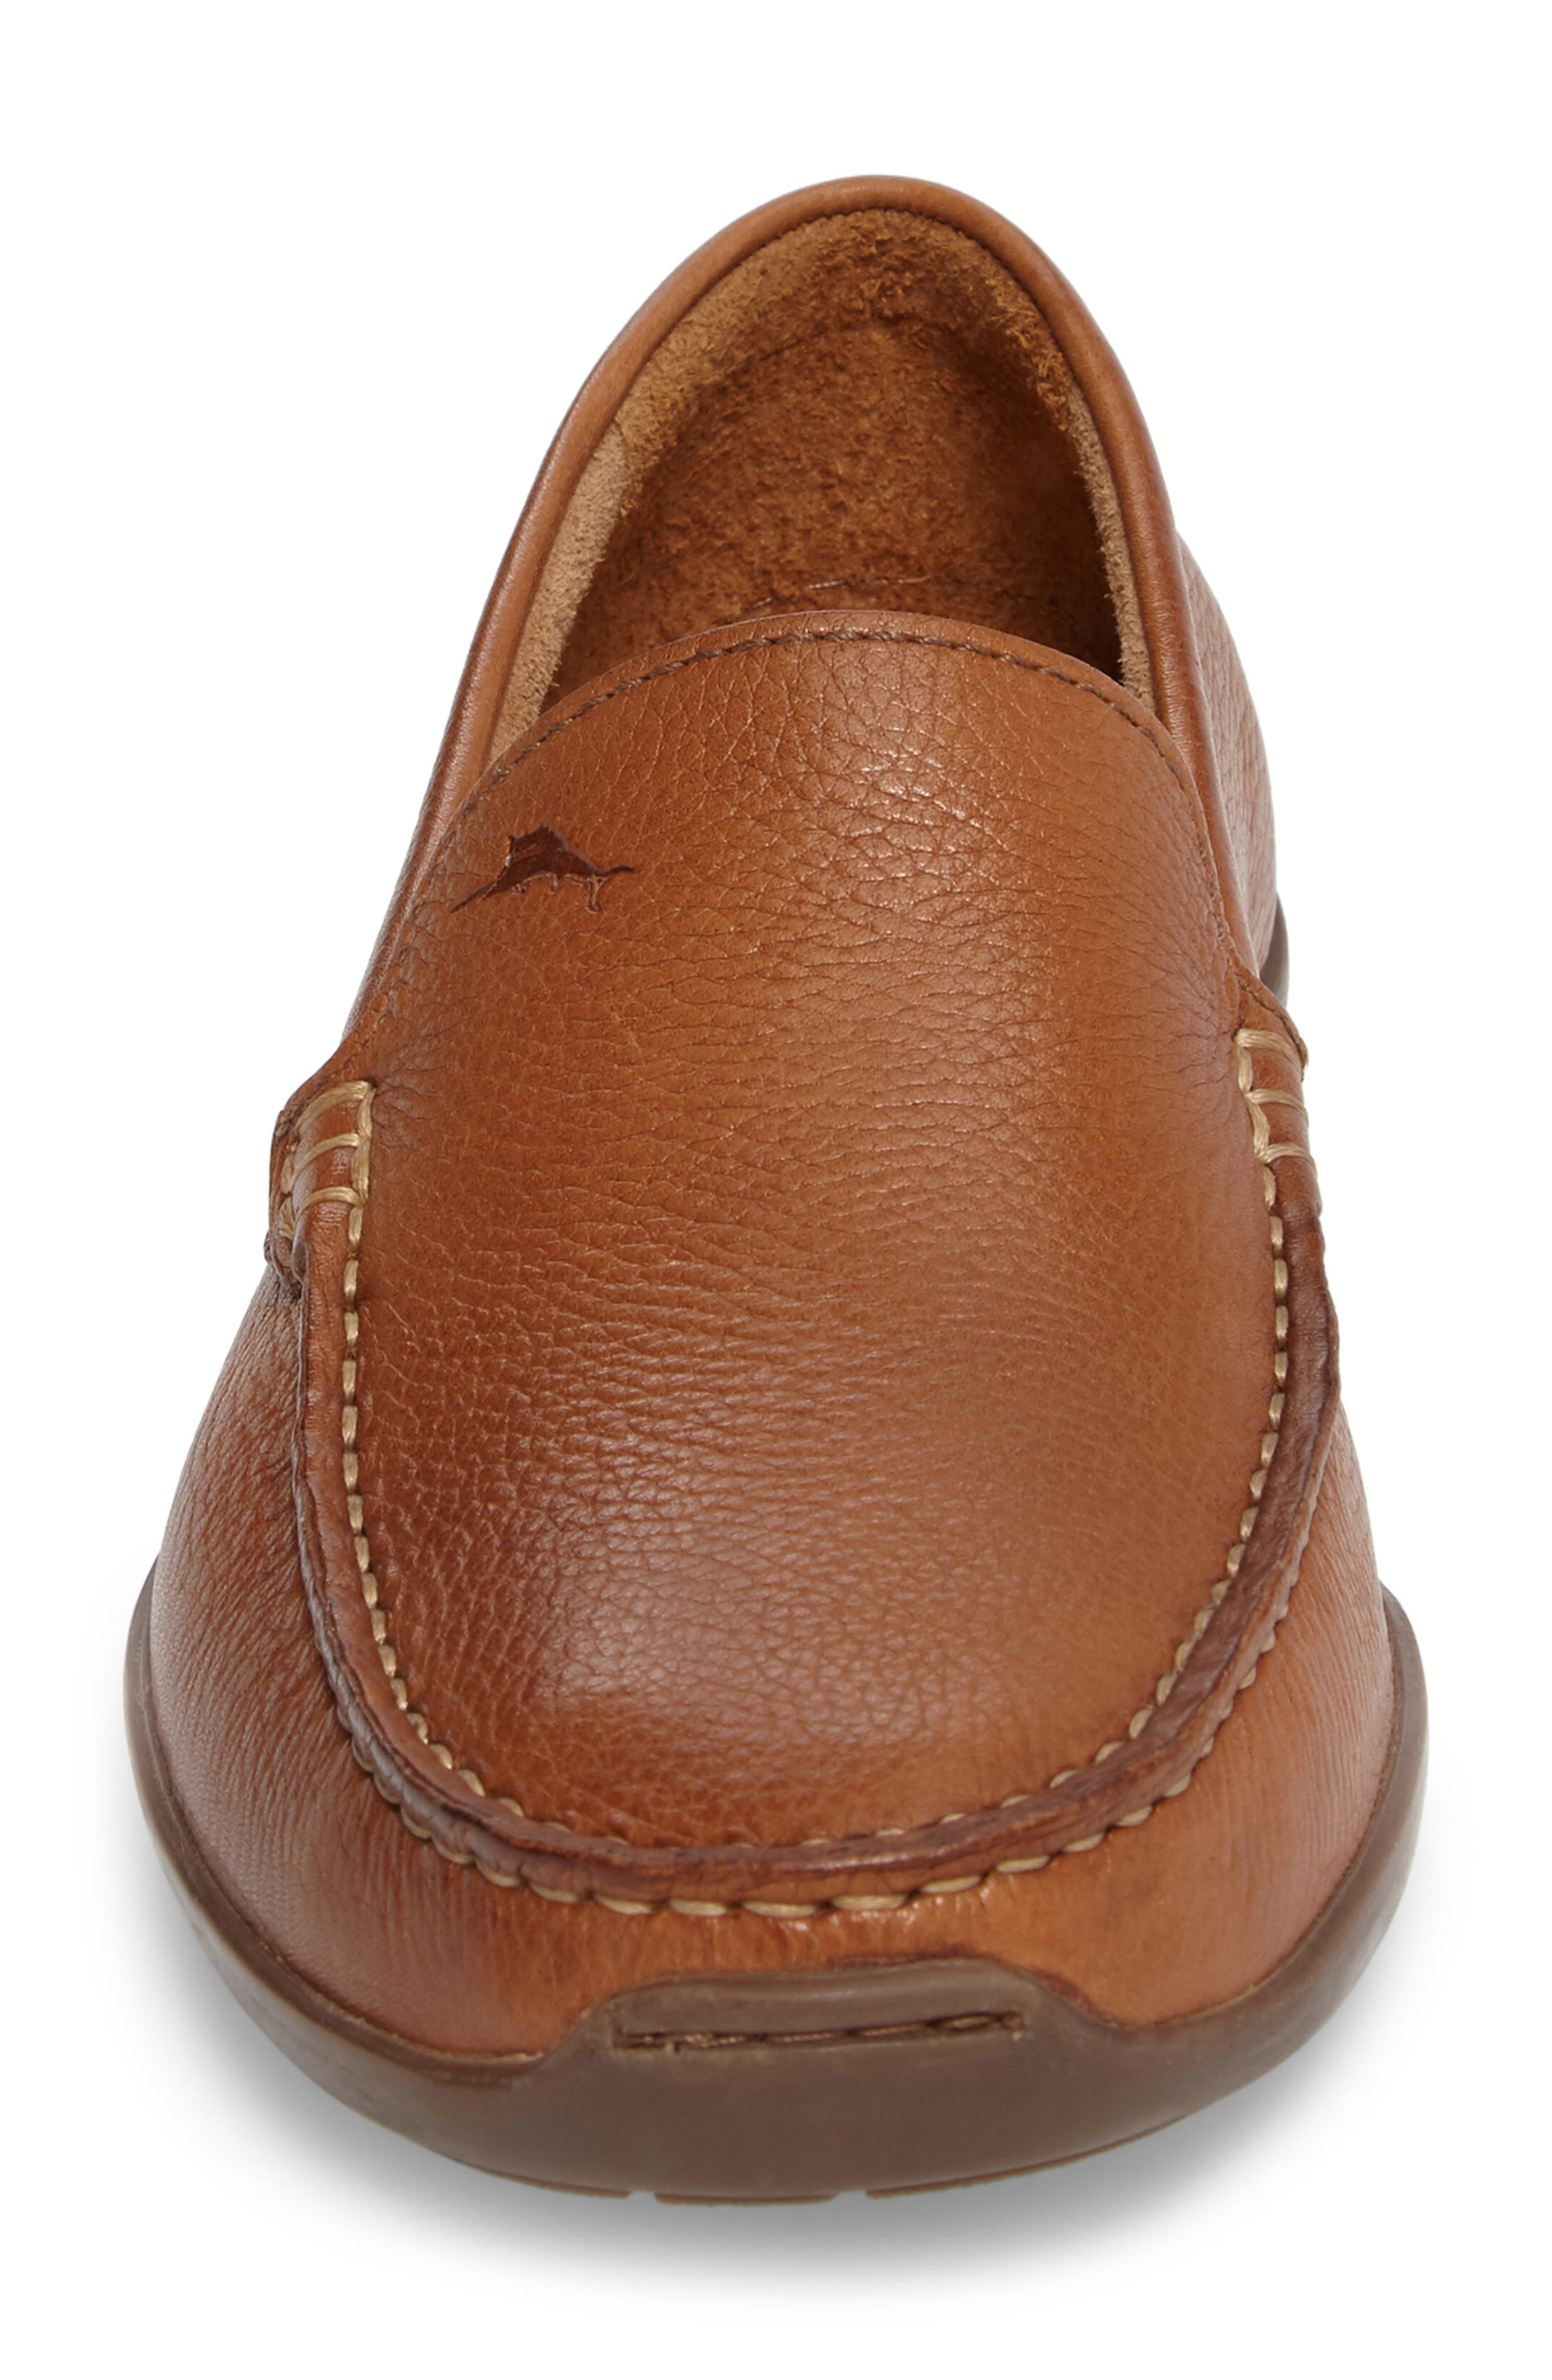 Orion Venetian Loafer,                             Alternate thumbnail 4, color,                             TAN LEATHER